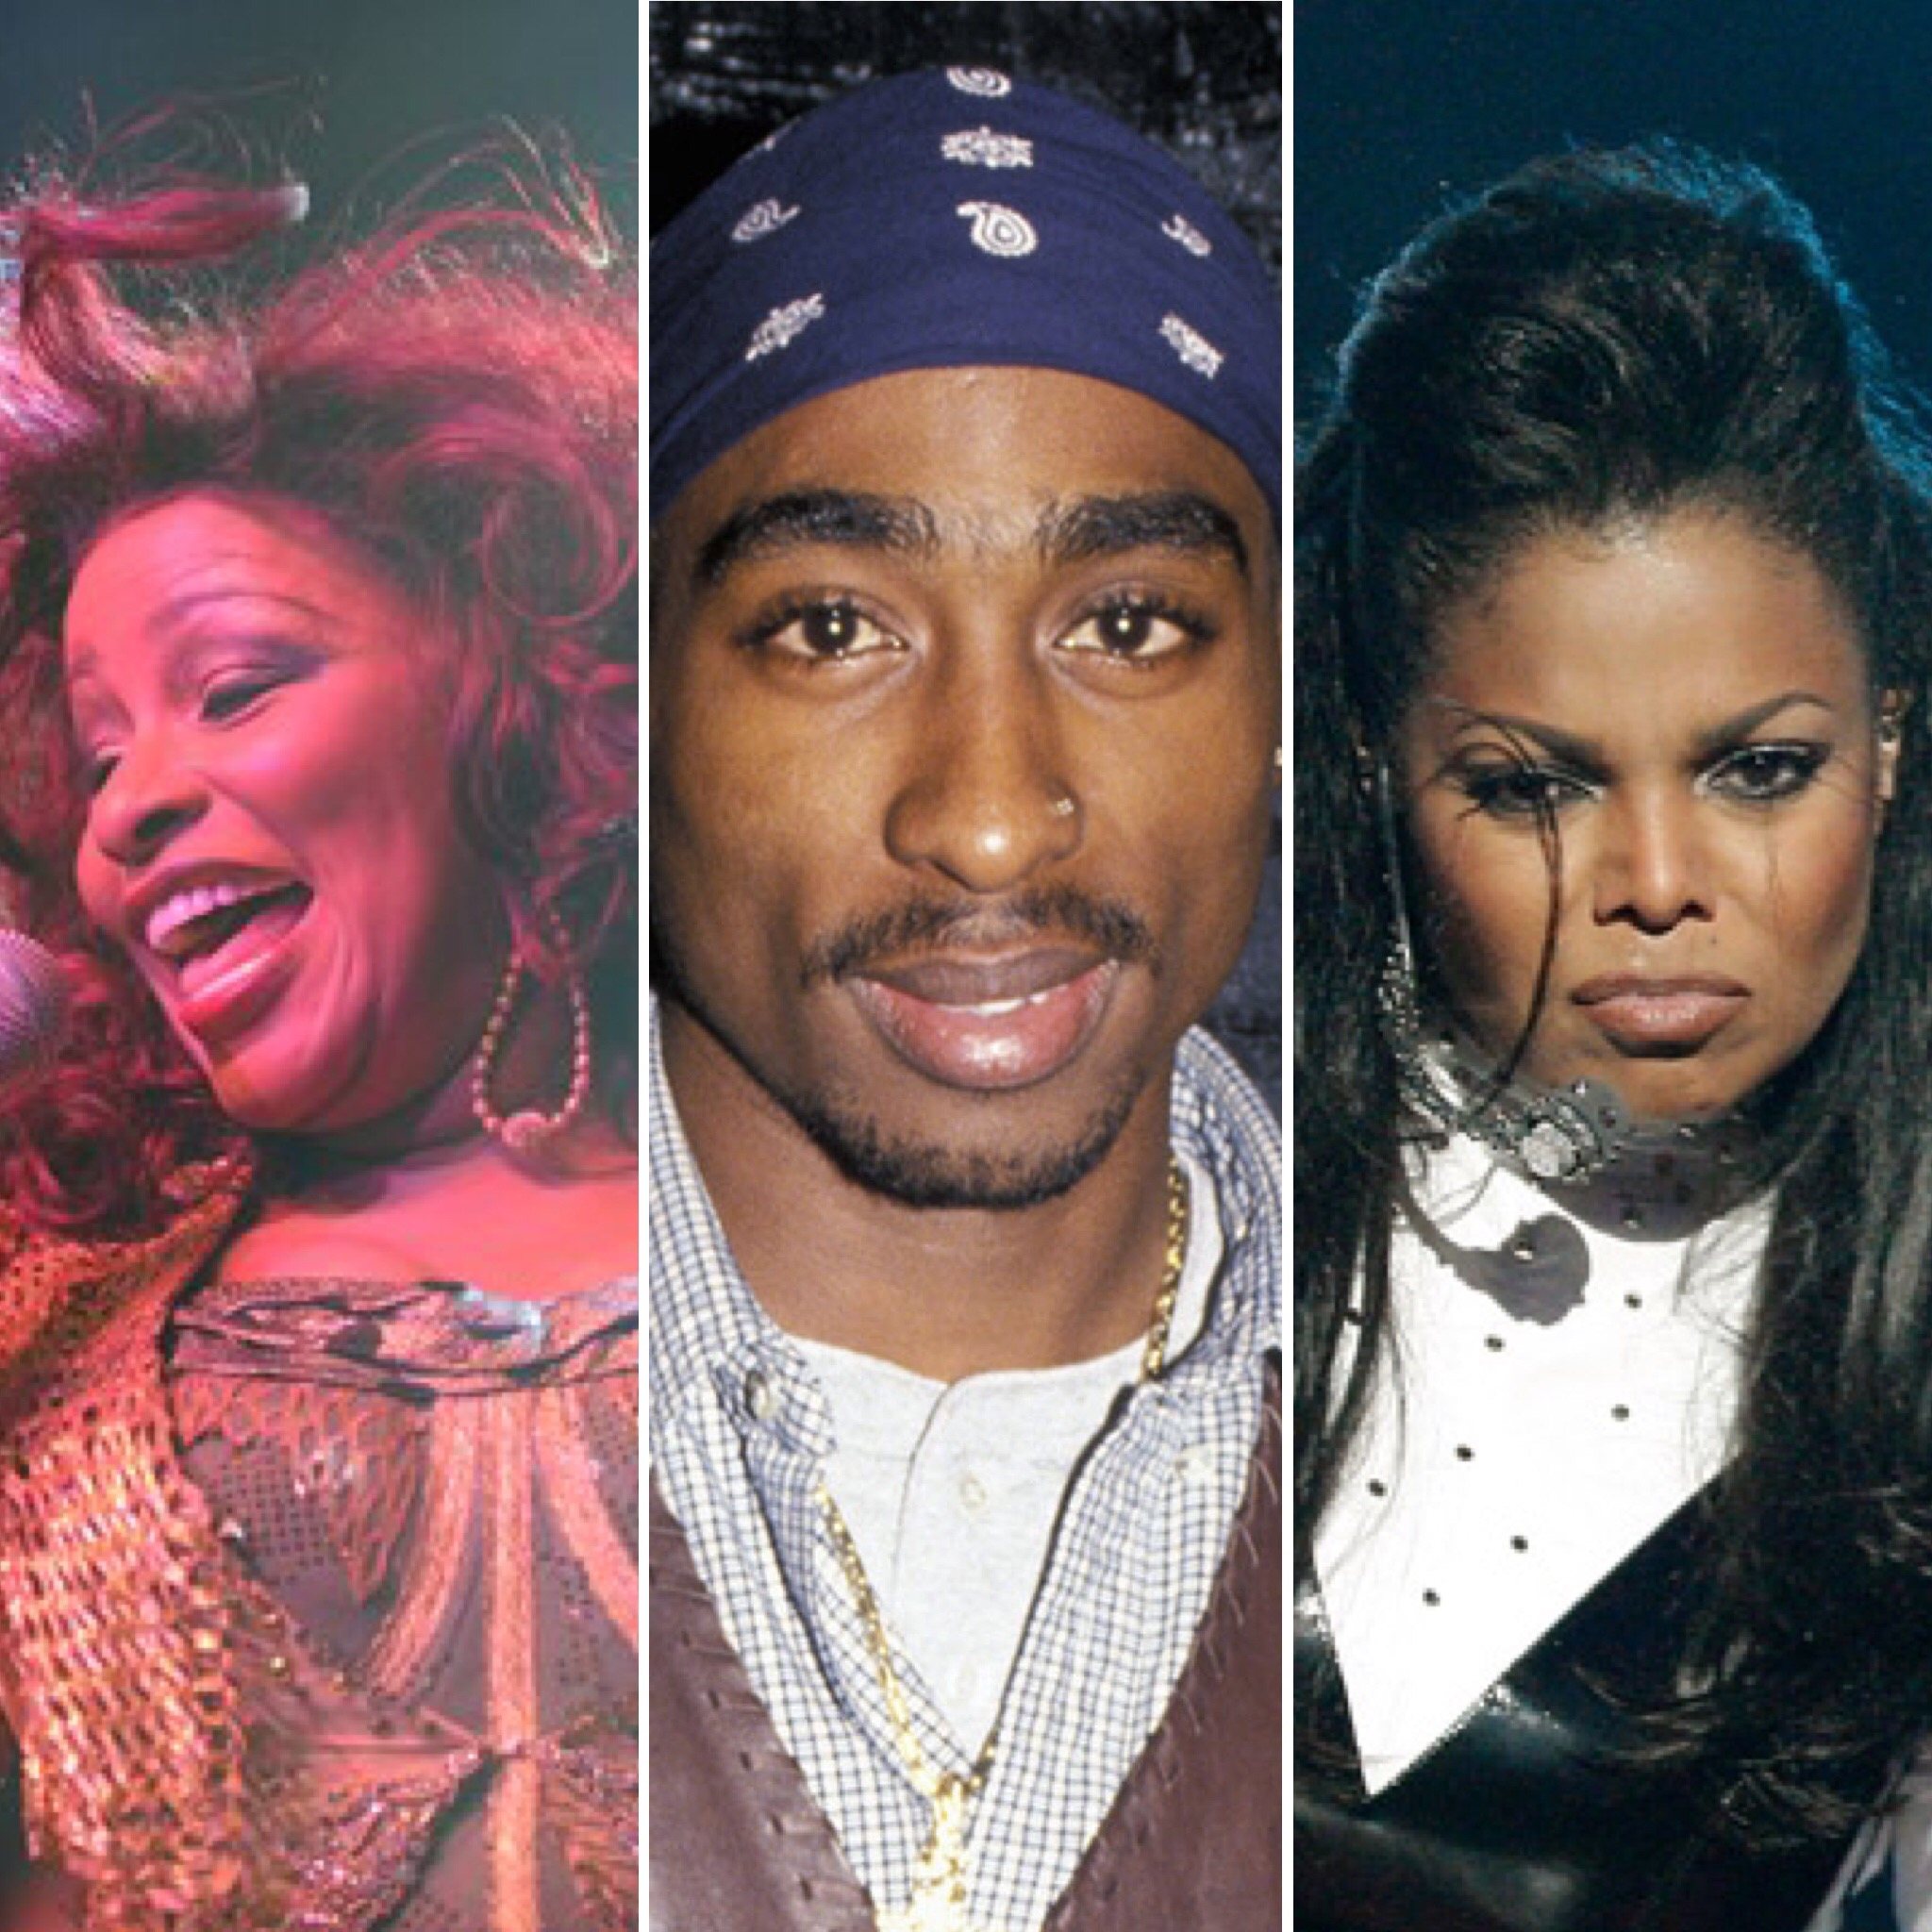 (L-R) Chaka Khan, Tupac, Janet Jackson (Getty Images)